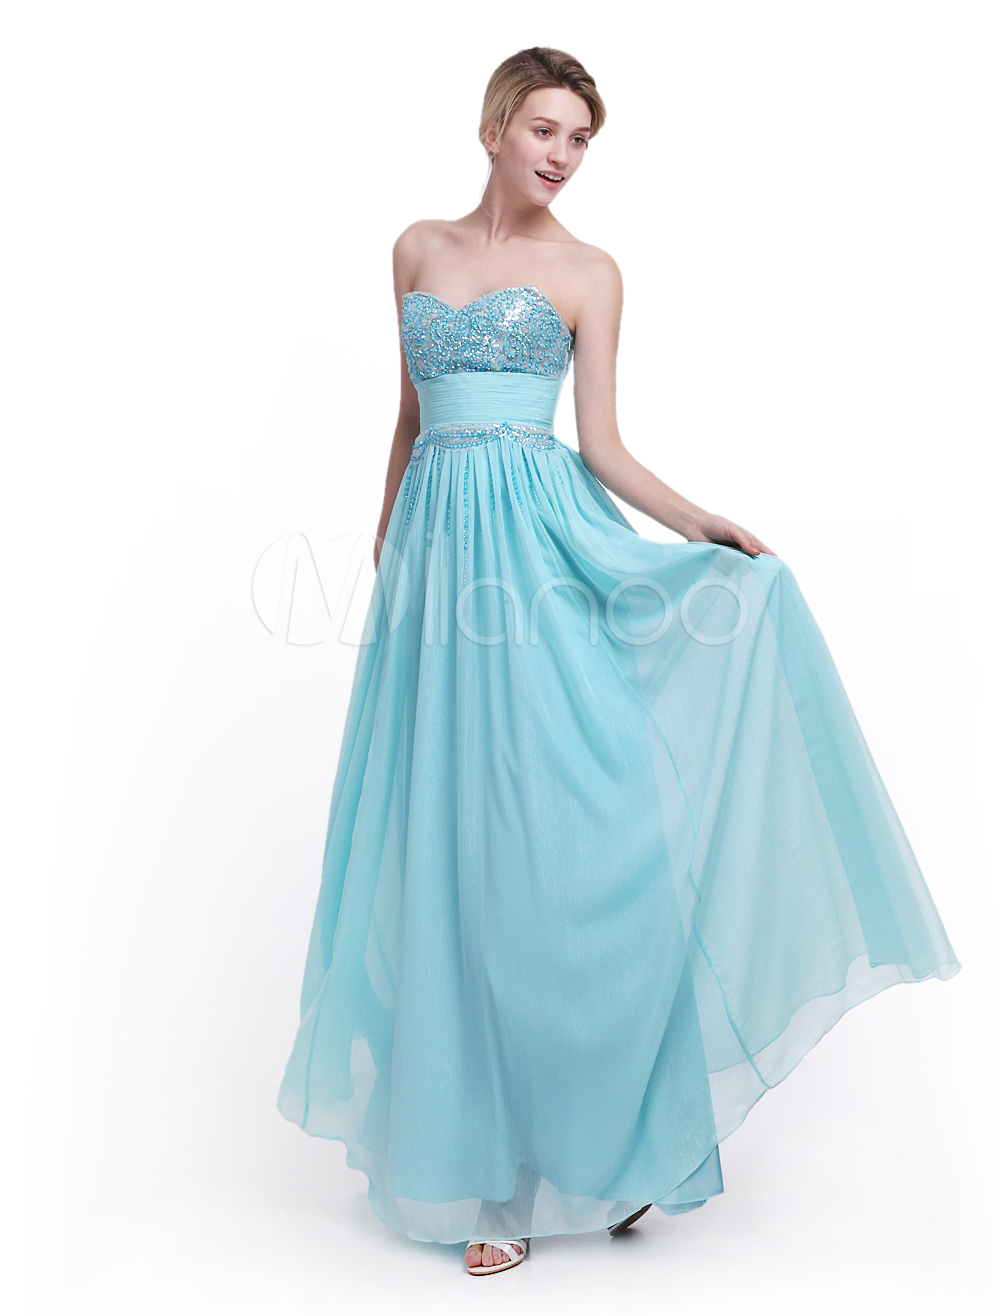 780b1944950 Mint Green Prom Dress Sweetheart Neck with Ruched A-line Bright Silk Chiffon  Skirt Milanoo  Dress